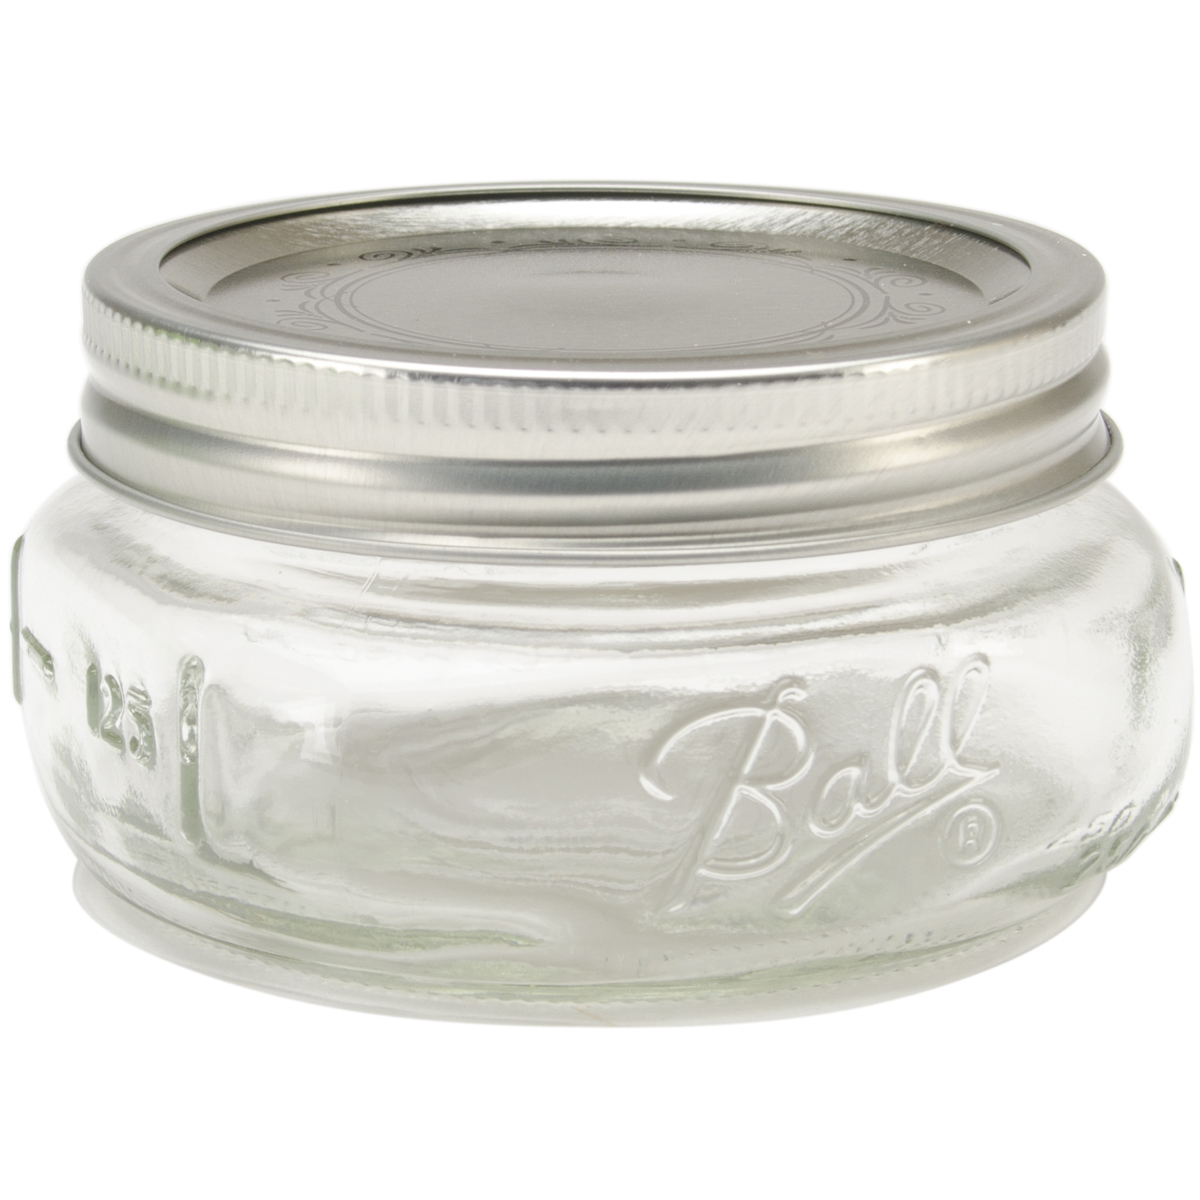 Ball Wide Mouth Canning Jar 4/Pkg-Half Pint